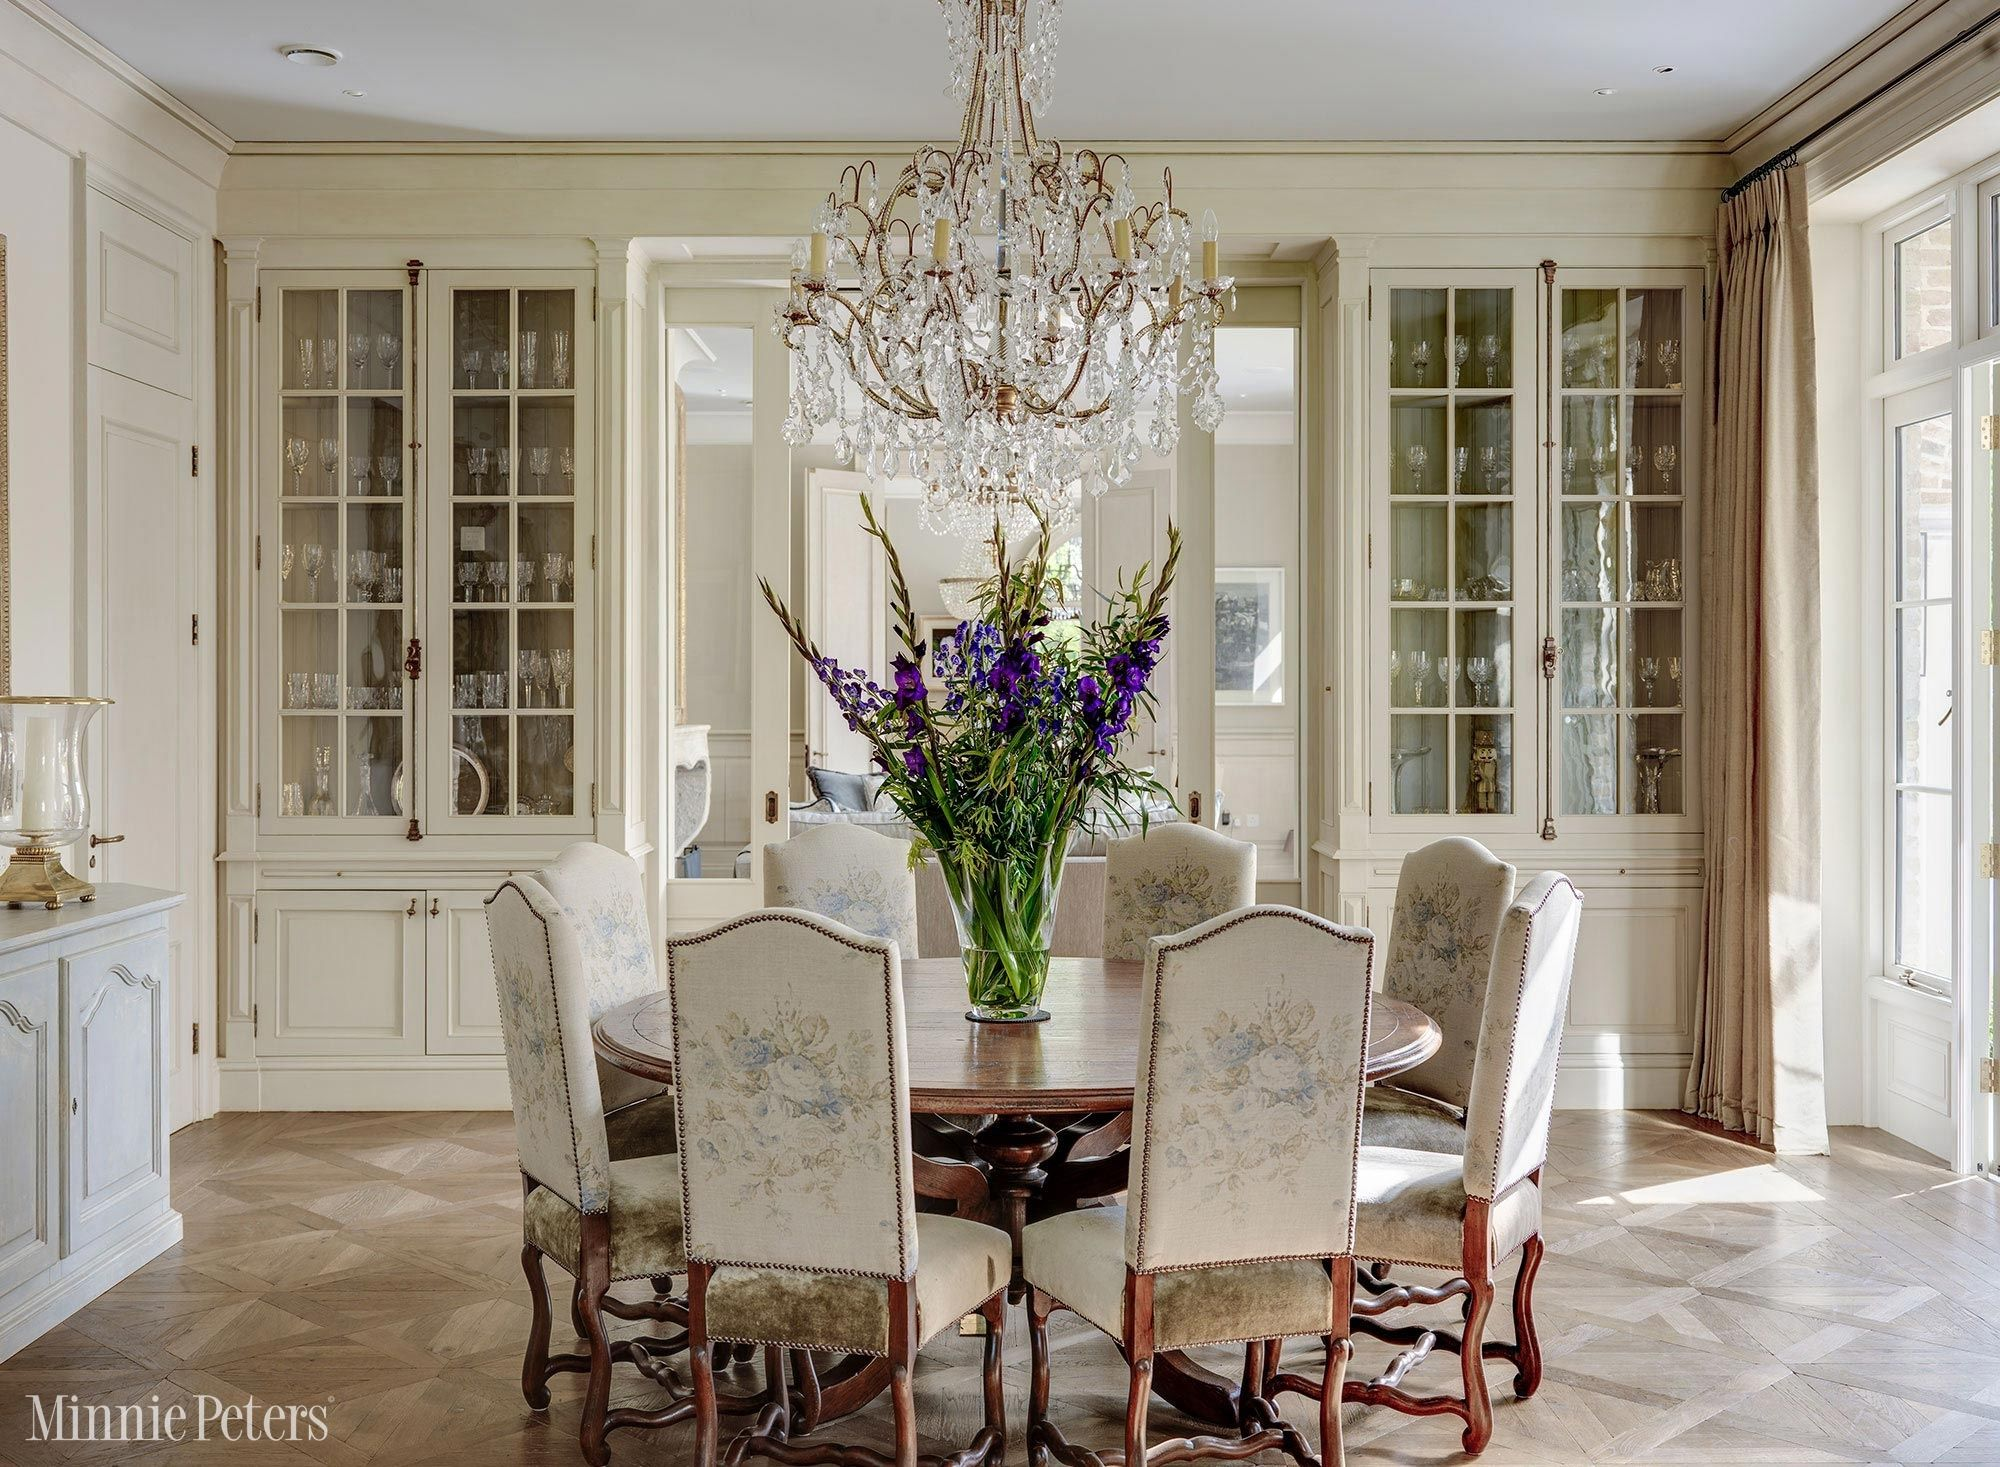 GORGEOUS DINING ROOM DECOR | How Beautiful Is This Dining Room Interior |  Http://www.bocadolobo.com/en/index.php | #diningroom #diningroomdecor